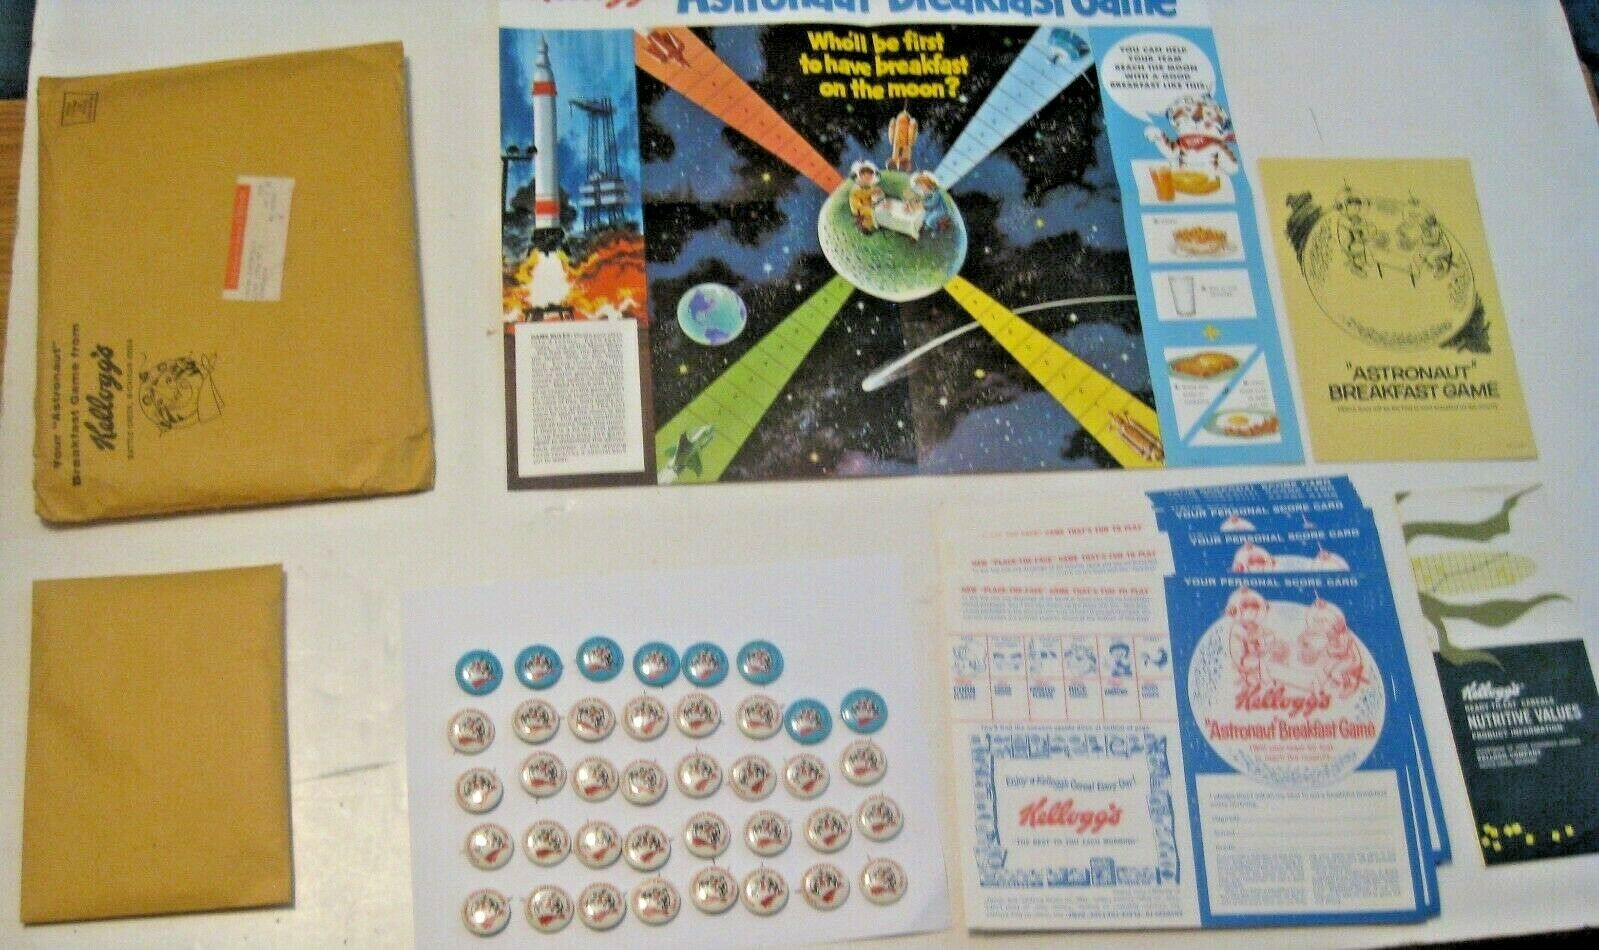 NOS VINTAGE 1960's KELLOGG'S CEREAL ASTRONAUT BREAKFAST GAME  RARE FIND